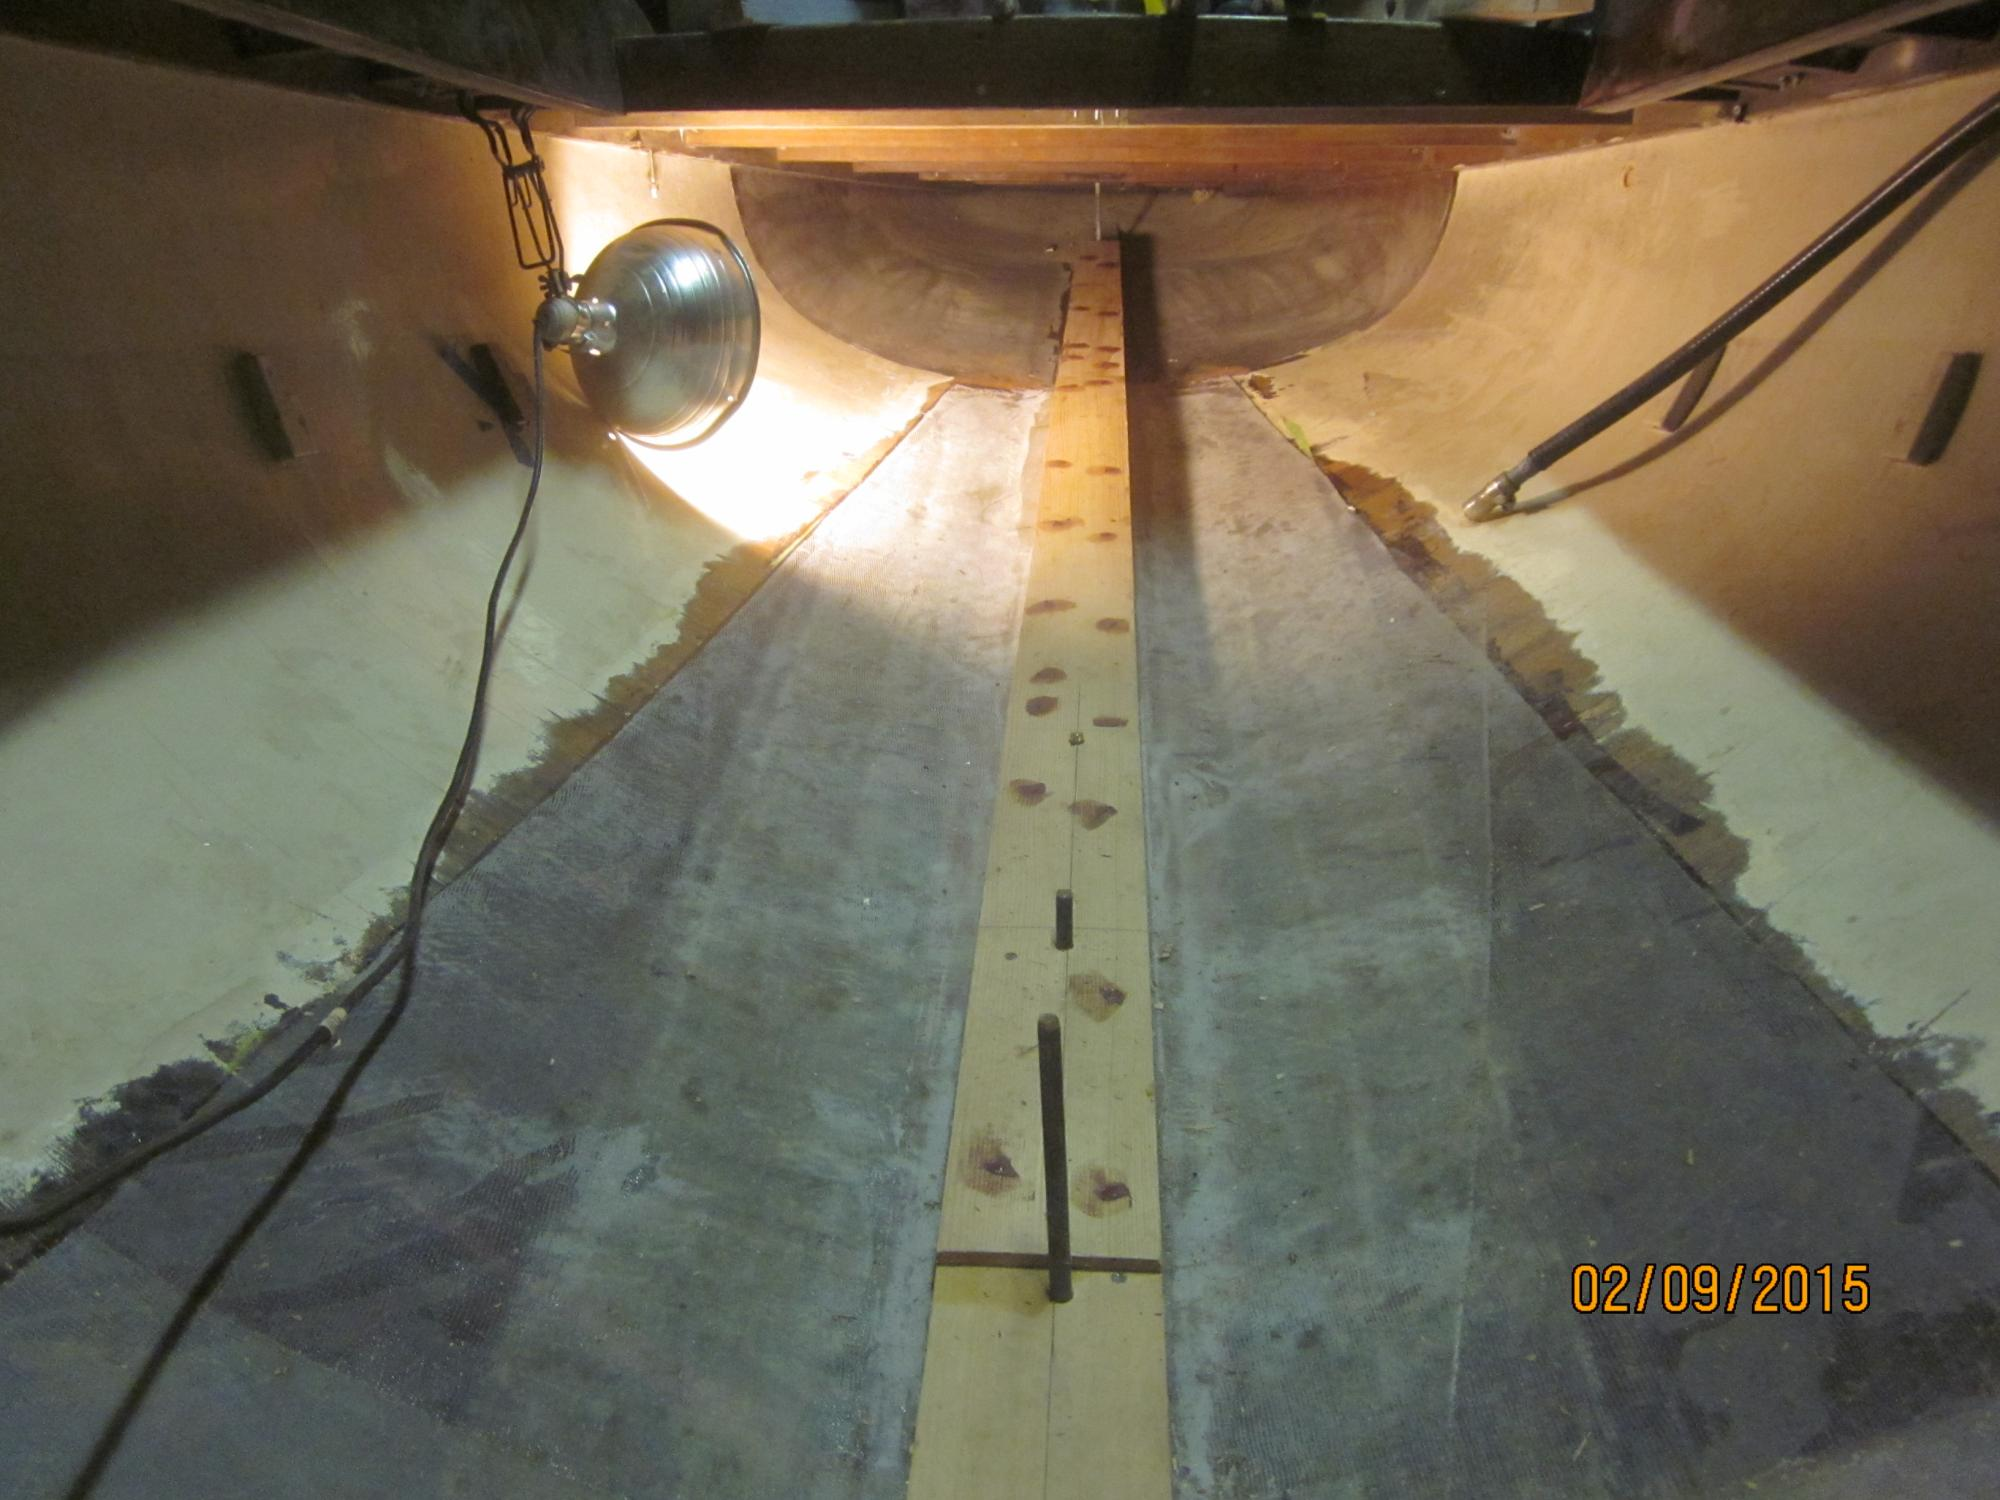 outside_veneers_repaired__interior_stripped__inside_of_hull_glassed__new_keel_batten_installed.JPG